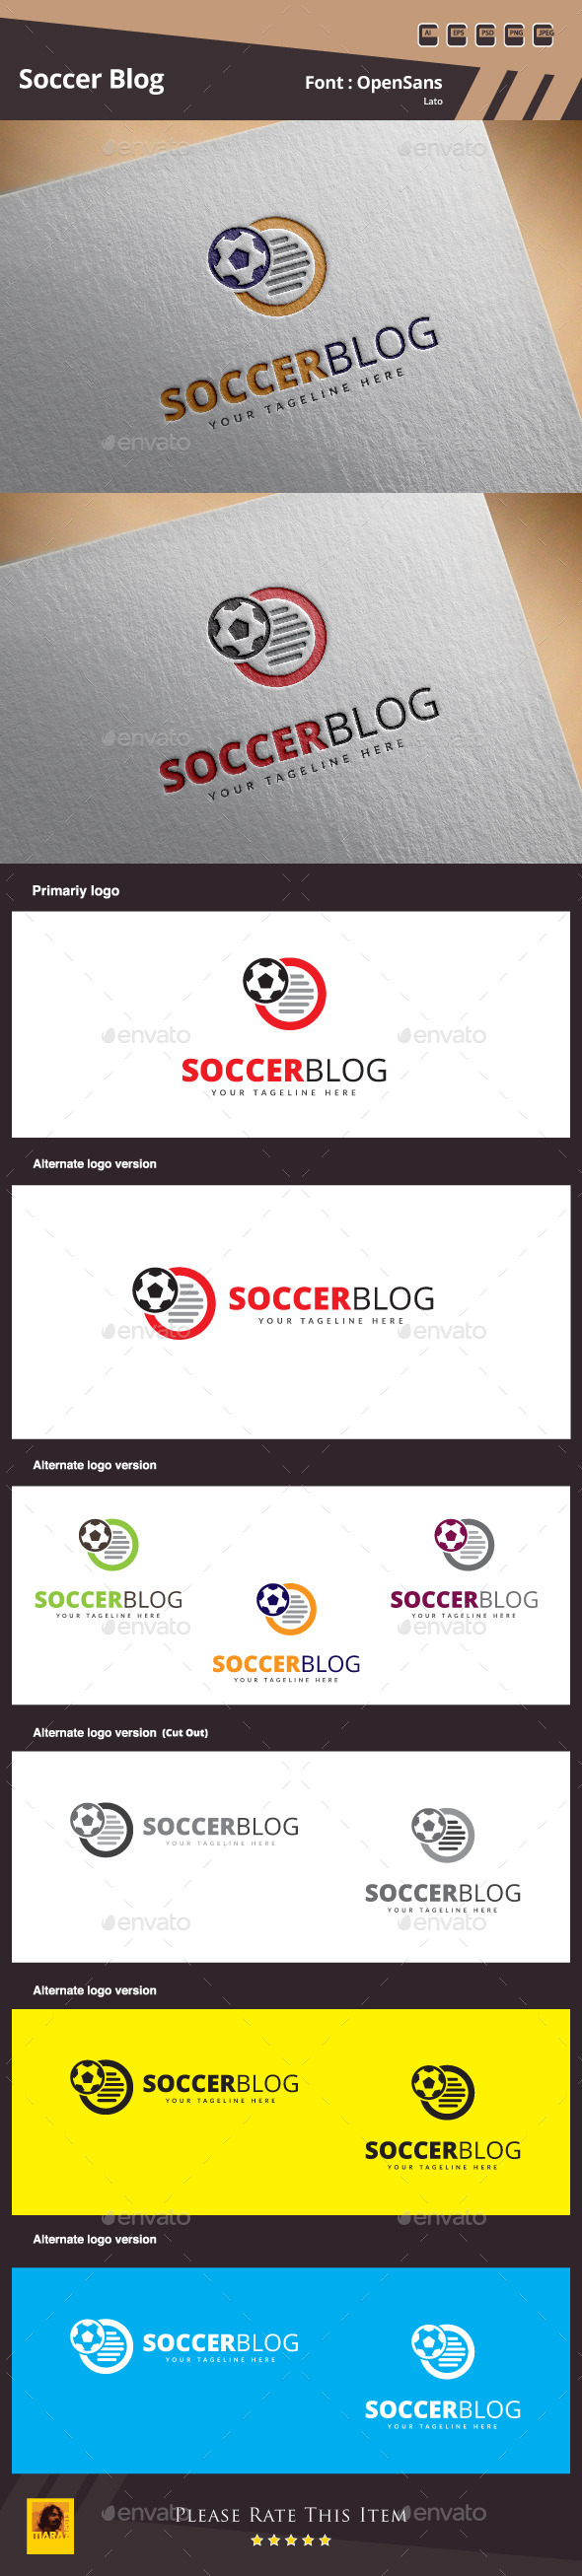 GraphicRiver Soccer Blog Logo Template 10306263